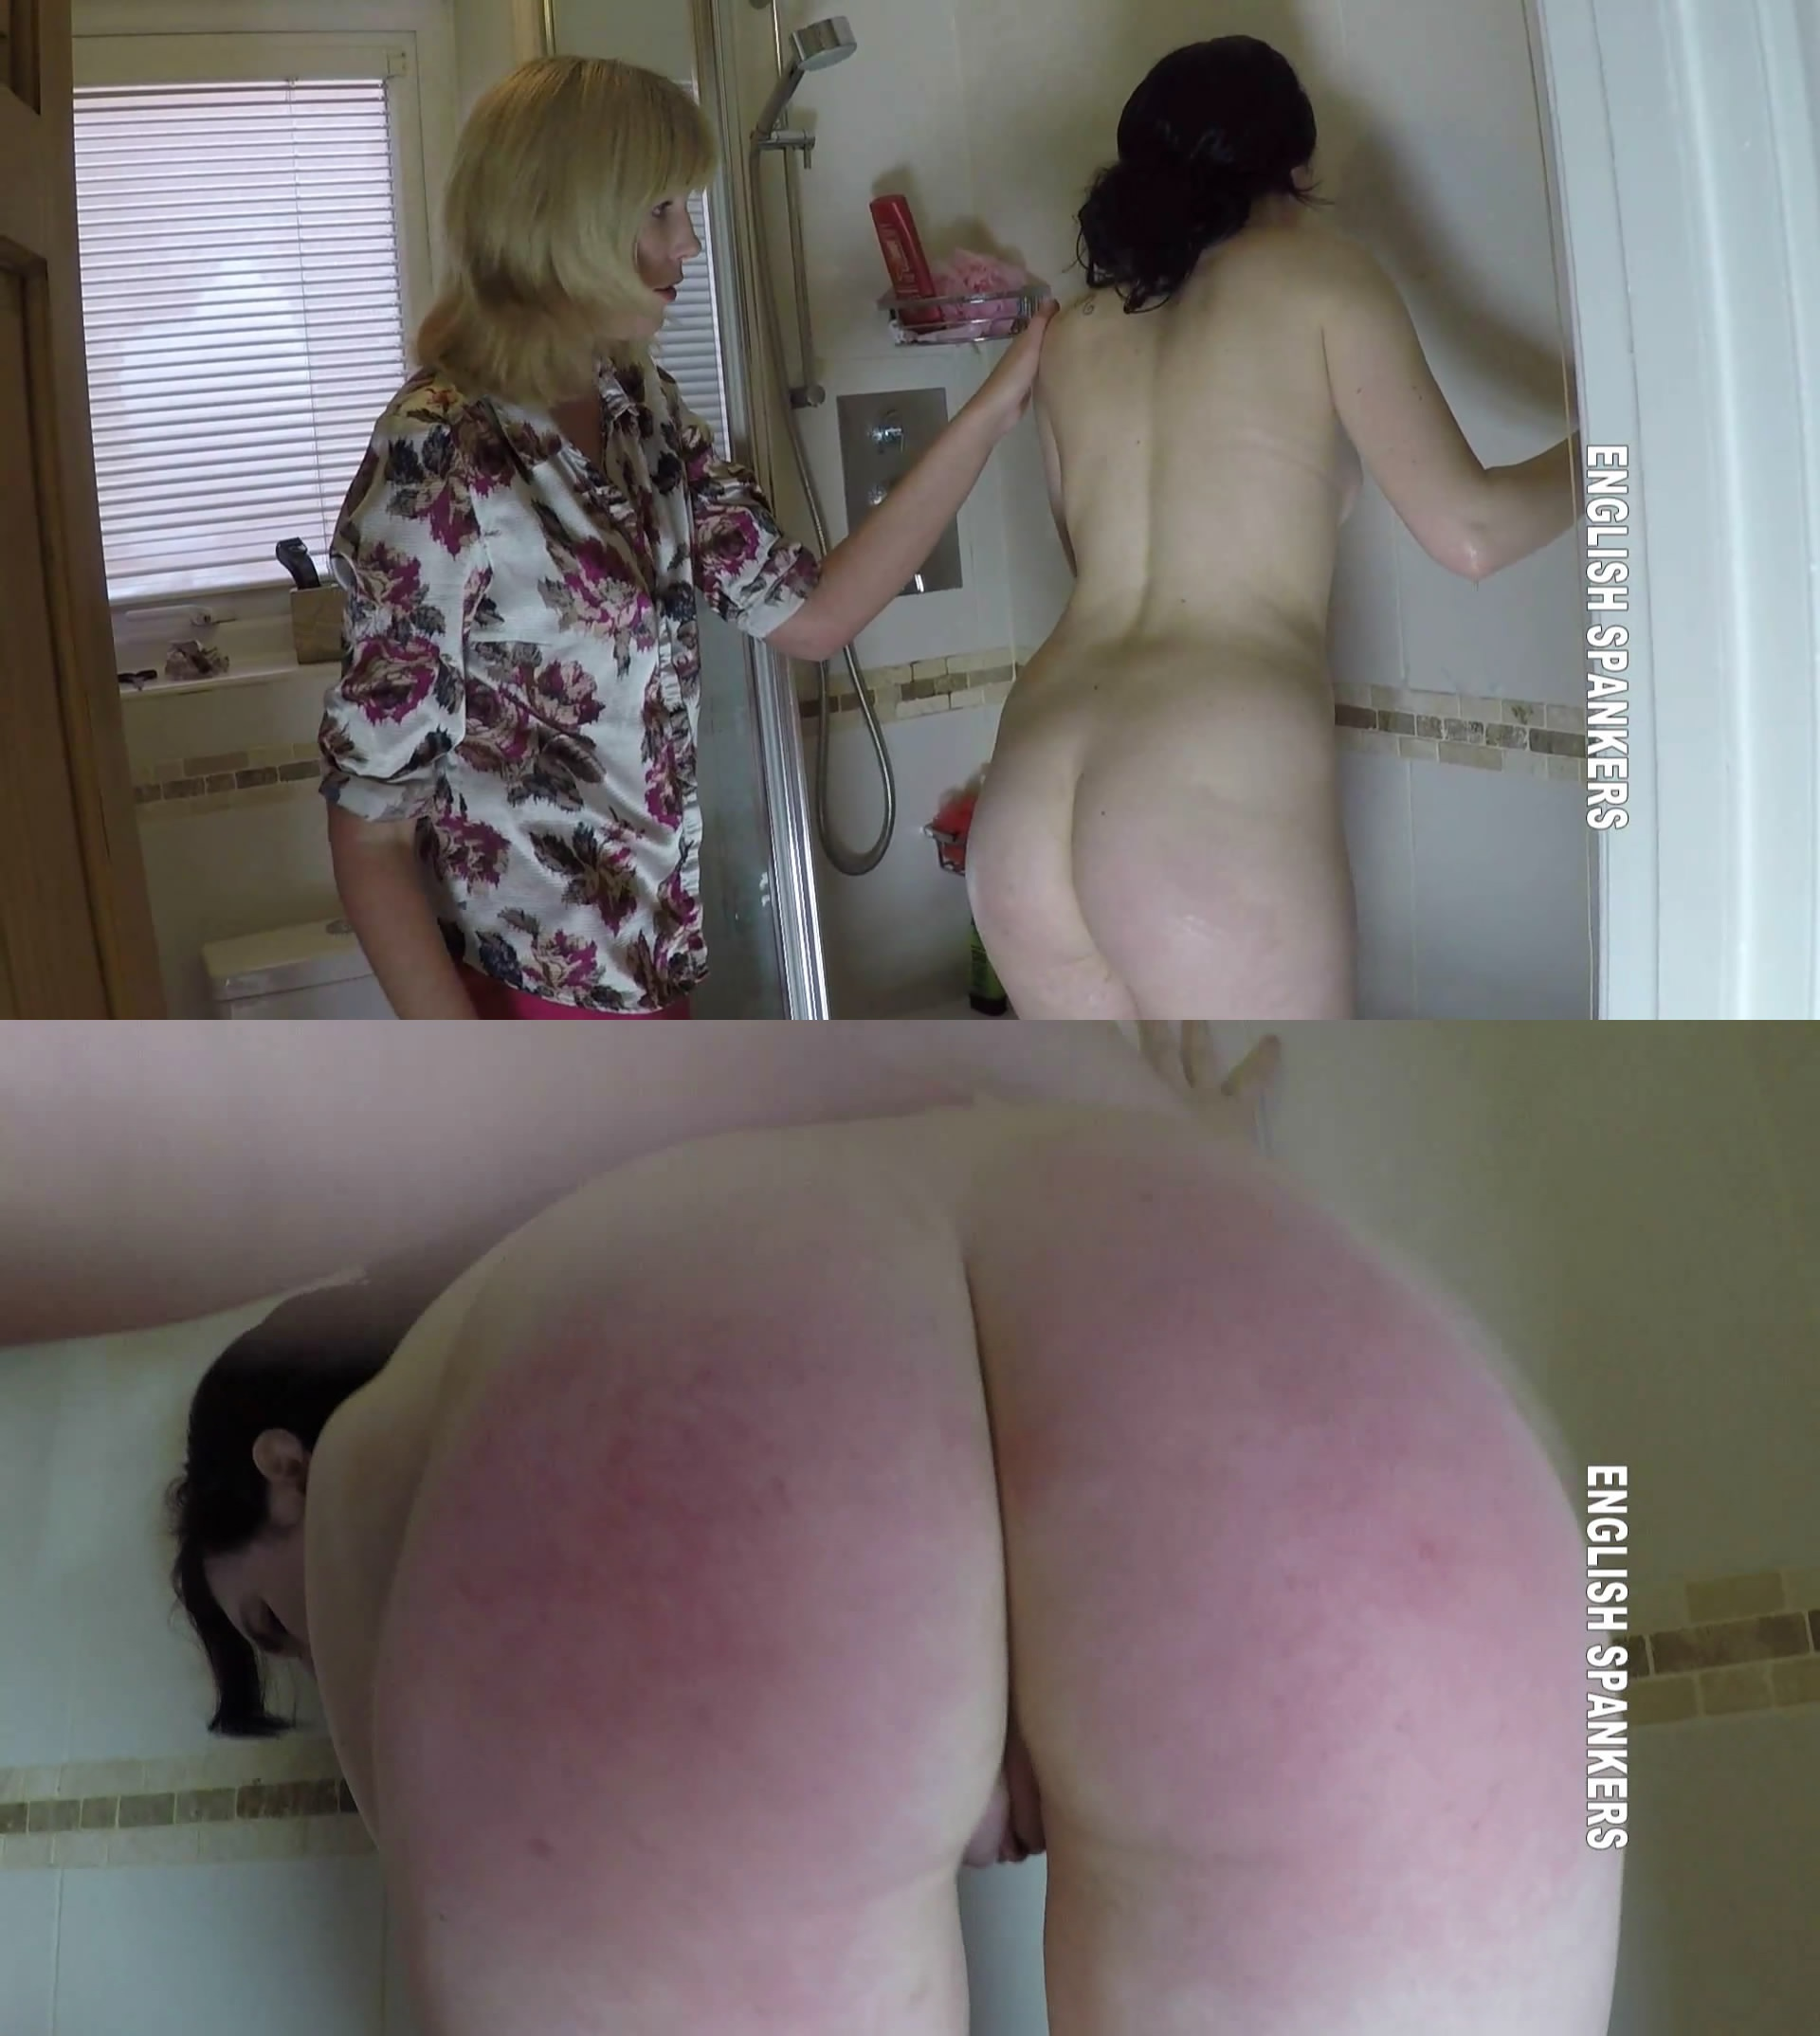 English Spankers – MP4/Full HD – spr-1427 Hand made films 4